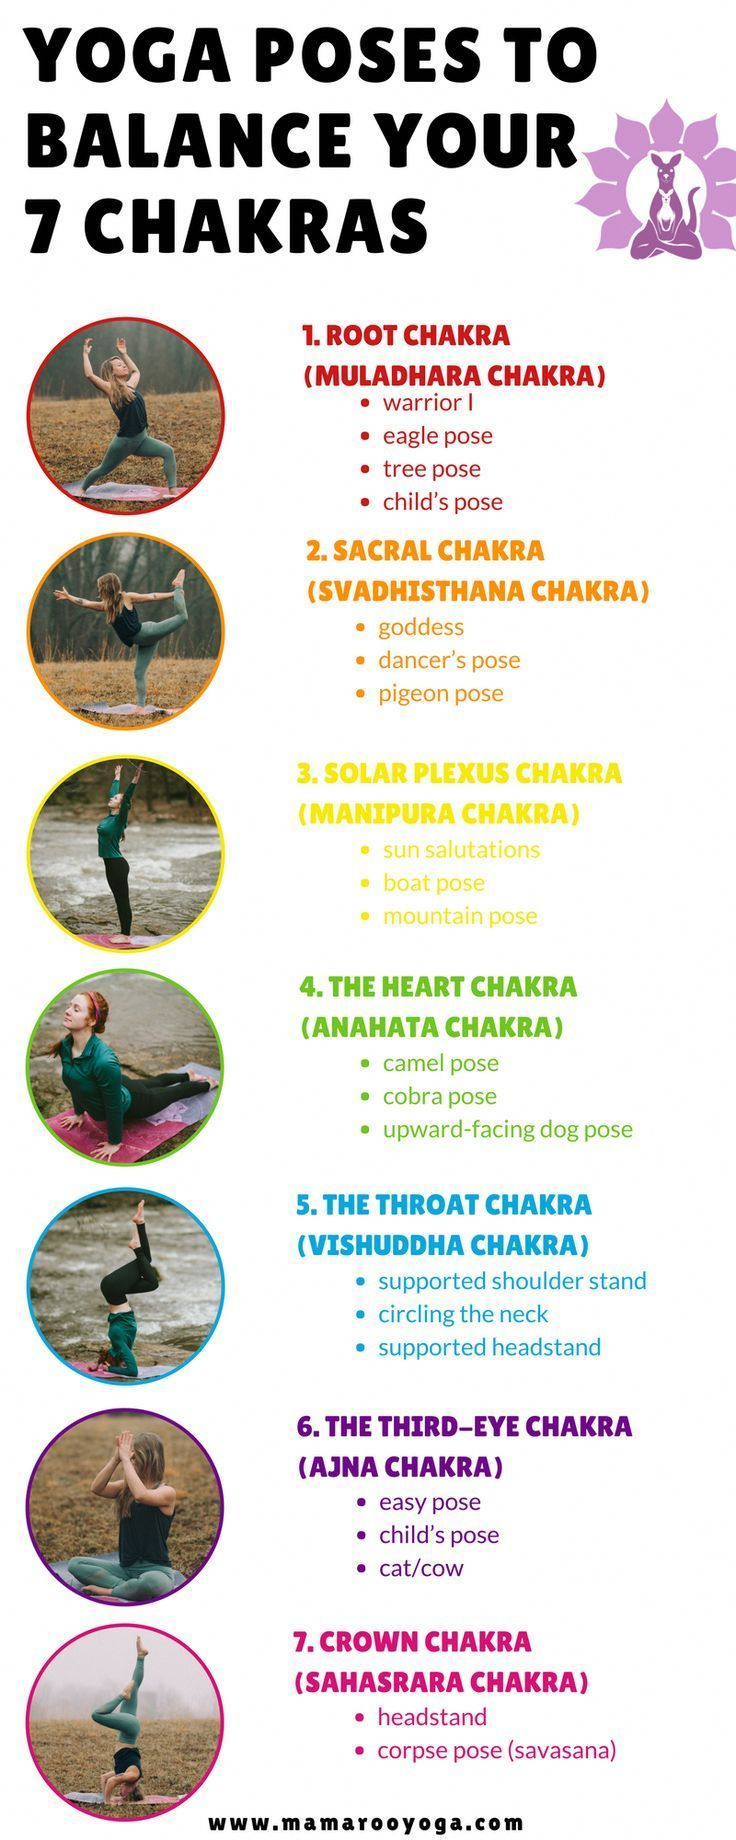 Yoga poses to balance your 38 chakras. Each of the 38 chakras in our